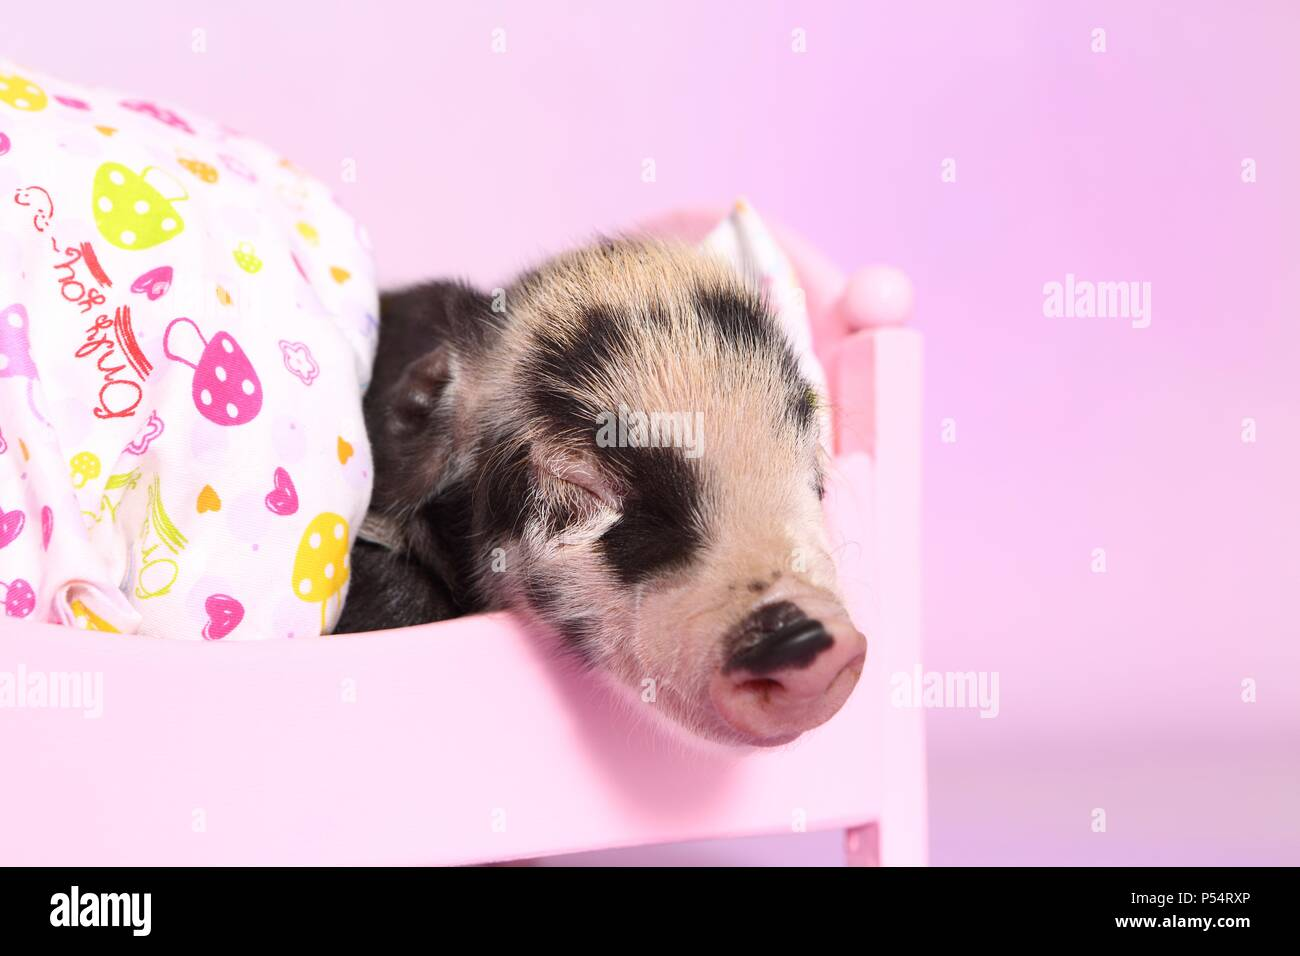 baby pig - Stock Image